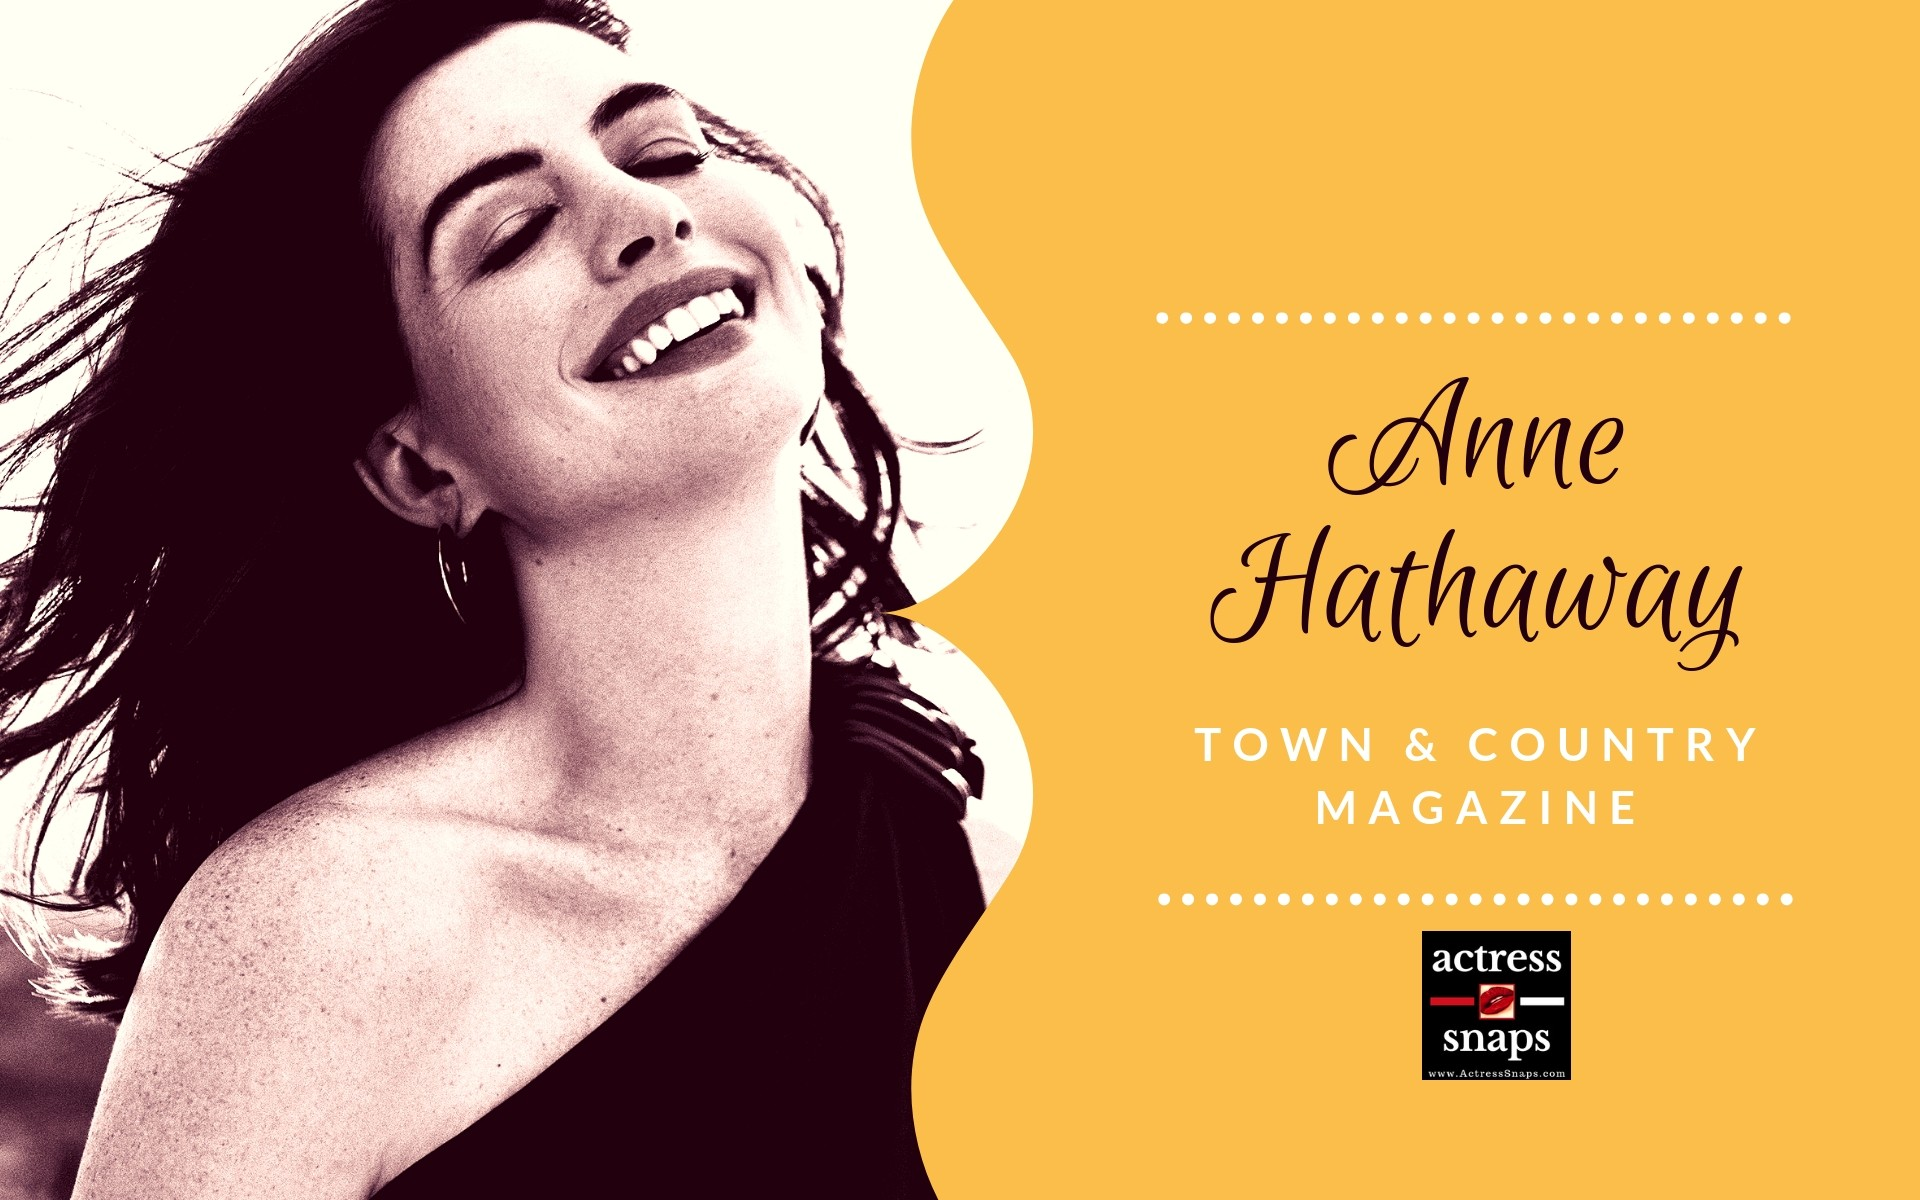 Anne Hathaway - Town & Country Magazine - Sexy Actress Pictures | Hot Actress Pictures - ActressSnaps.com